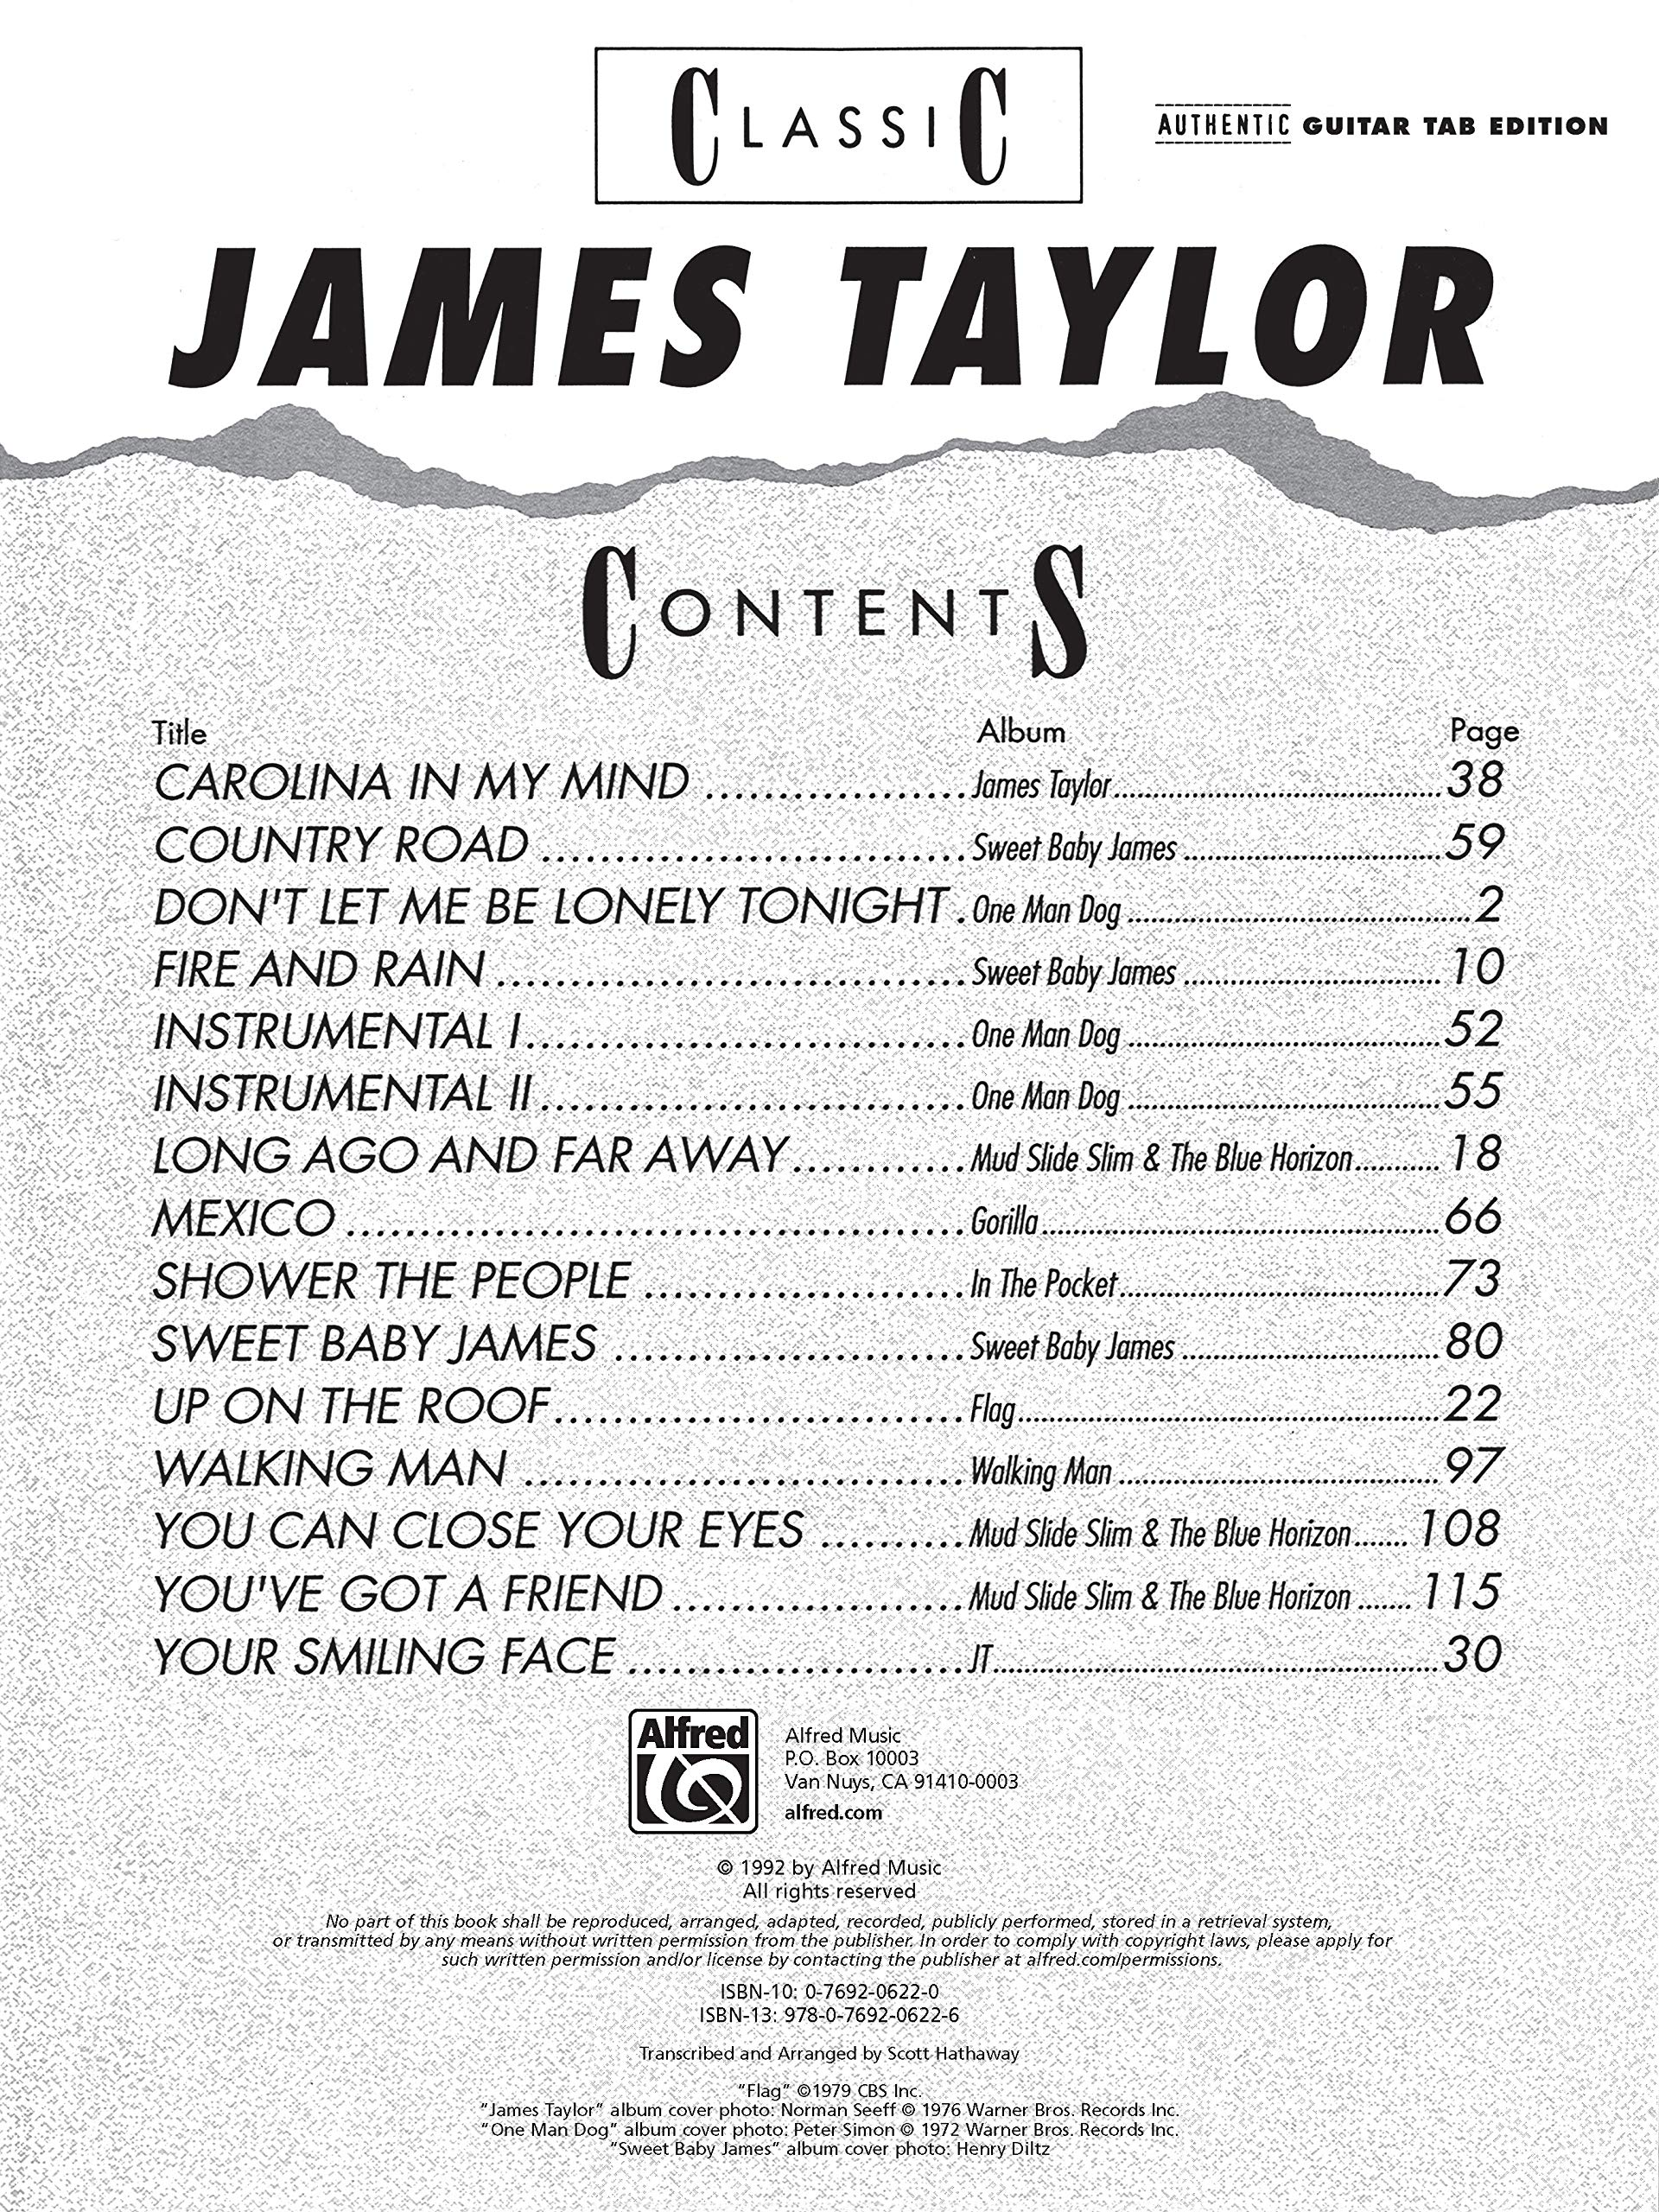 Classic James Taylor: Authentic Guitar Tab: Amazon.es: Taylor ...